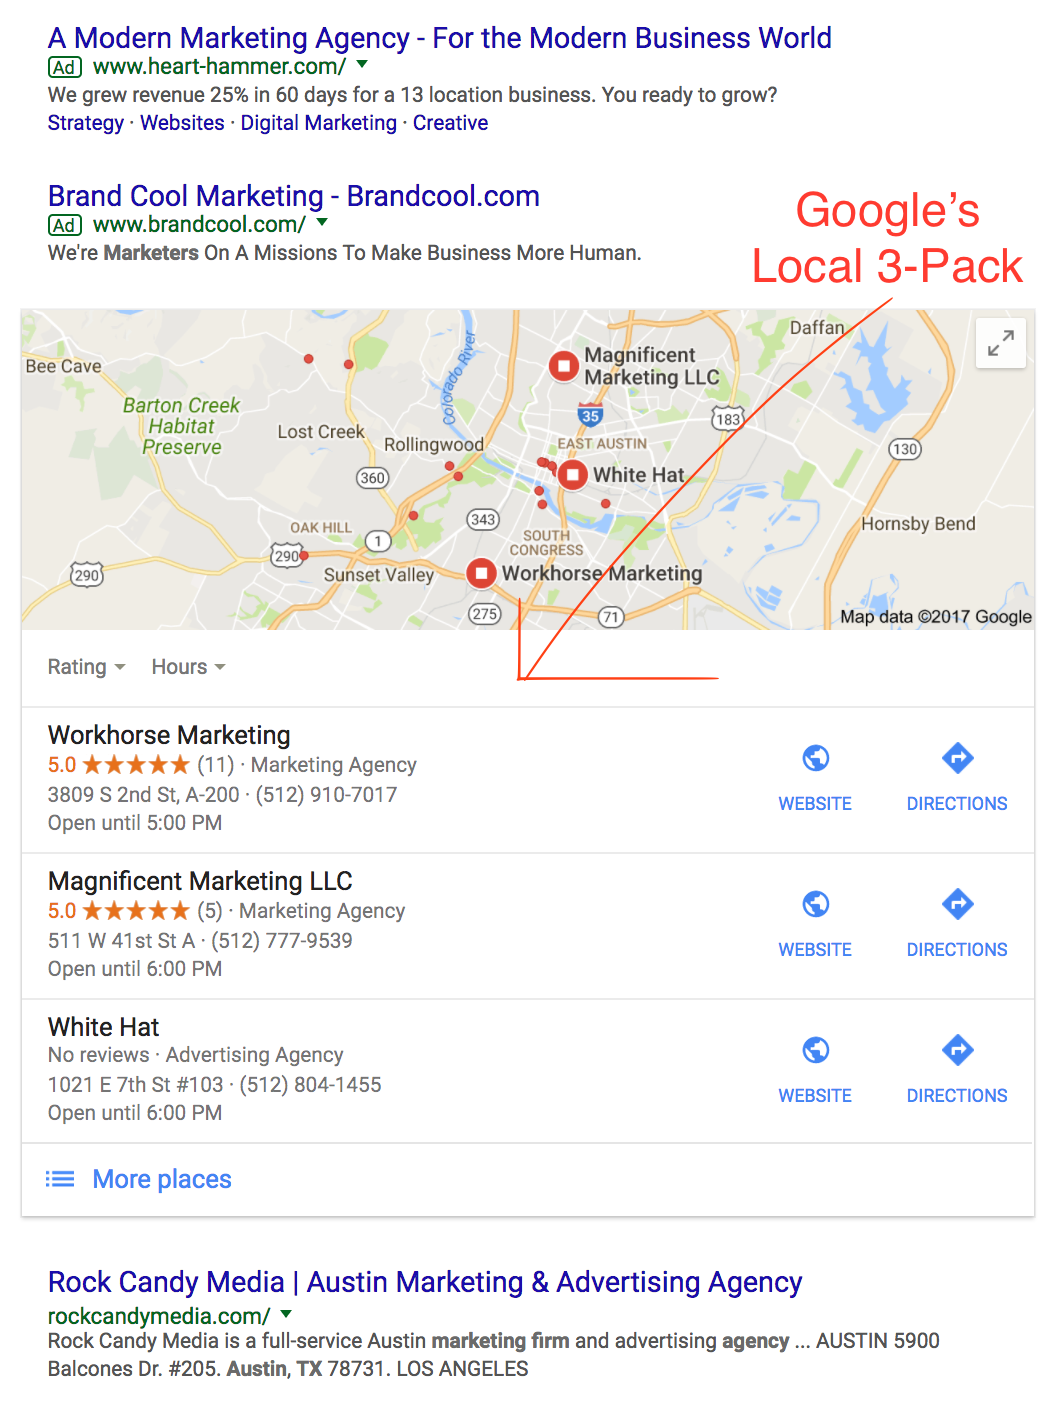 Google's Local 3-Pack, Small Business SEO Tips